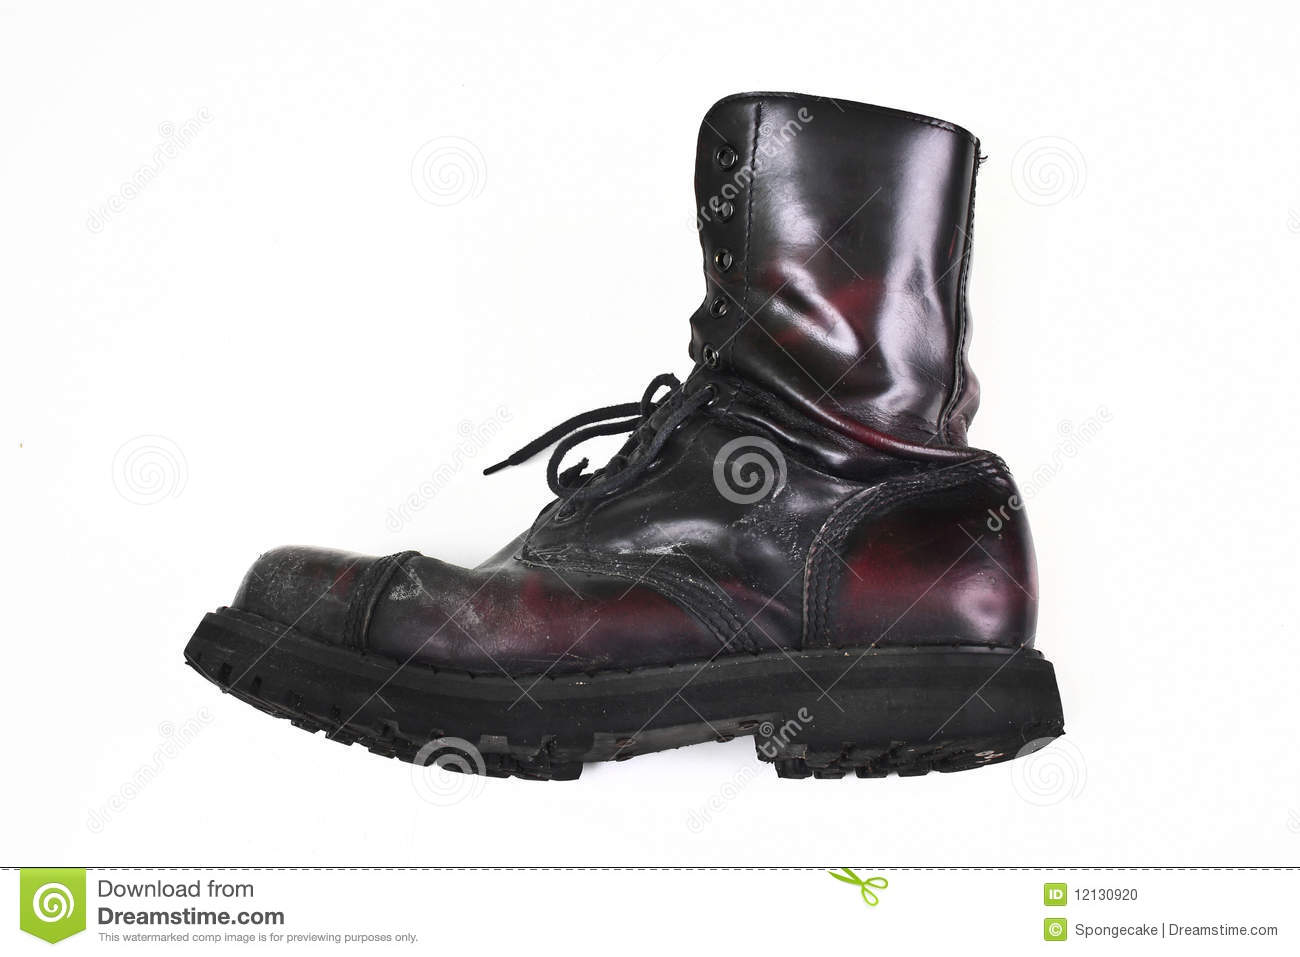 Dusty combat boot on white background.